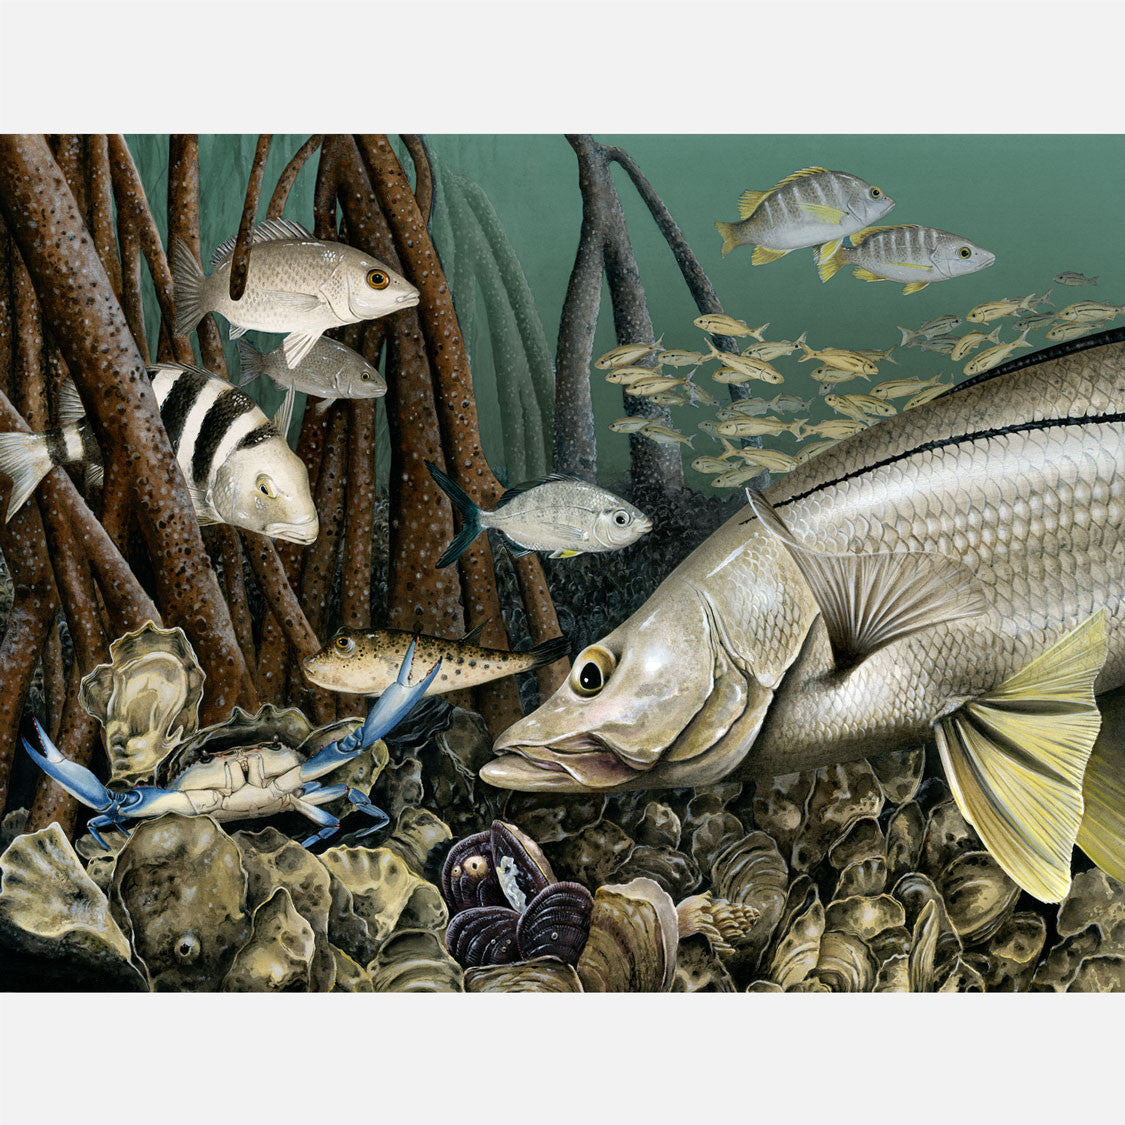 This beautiful, highly detailed and accurate illustration of an oyster reef from a predator's view. The art features a snook and several other Florida fish species.